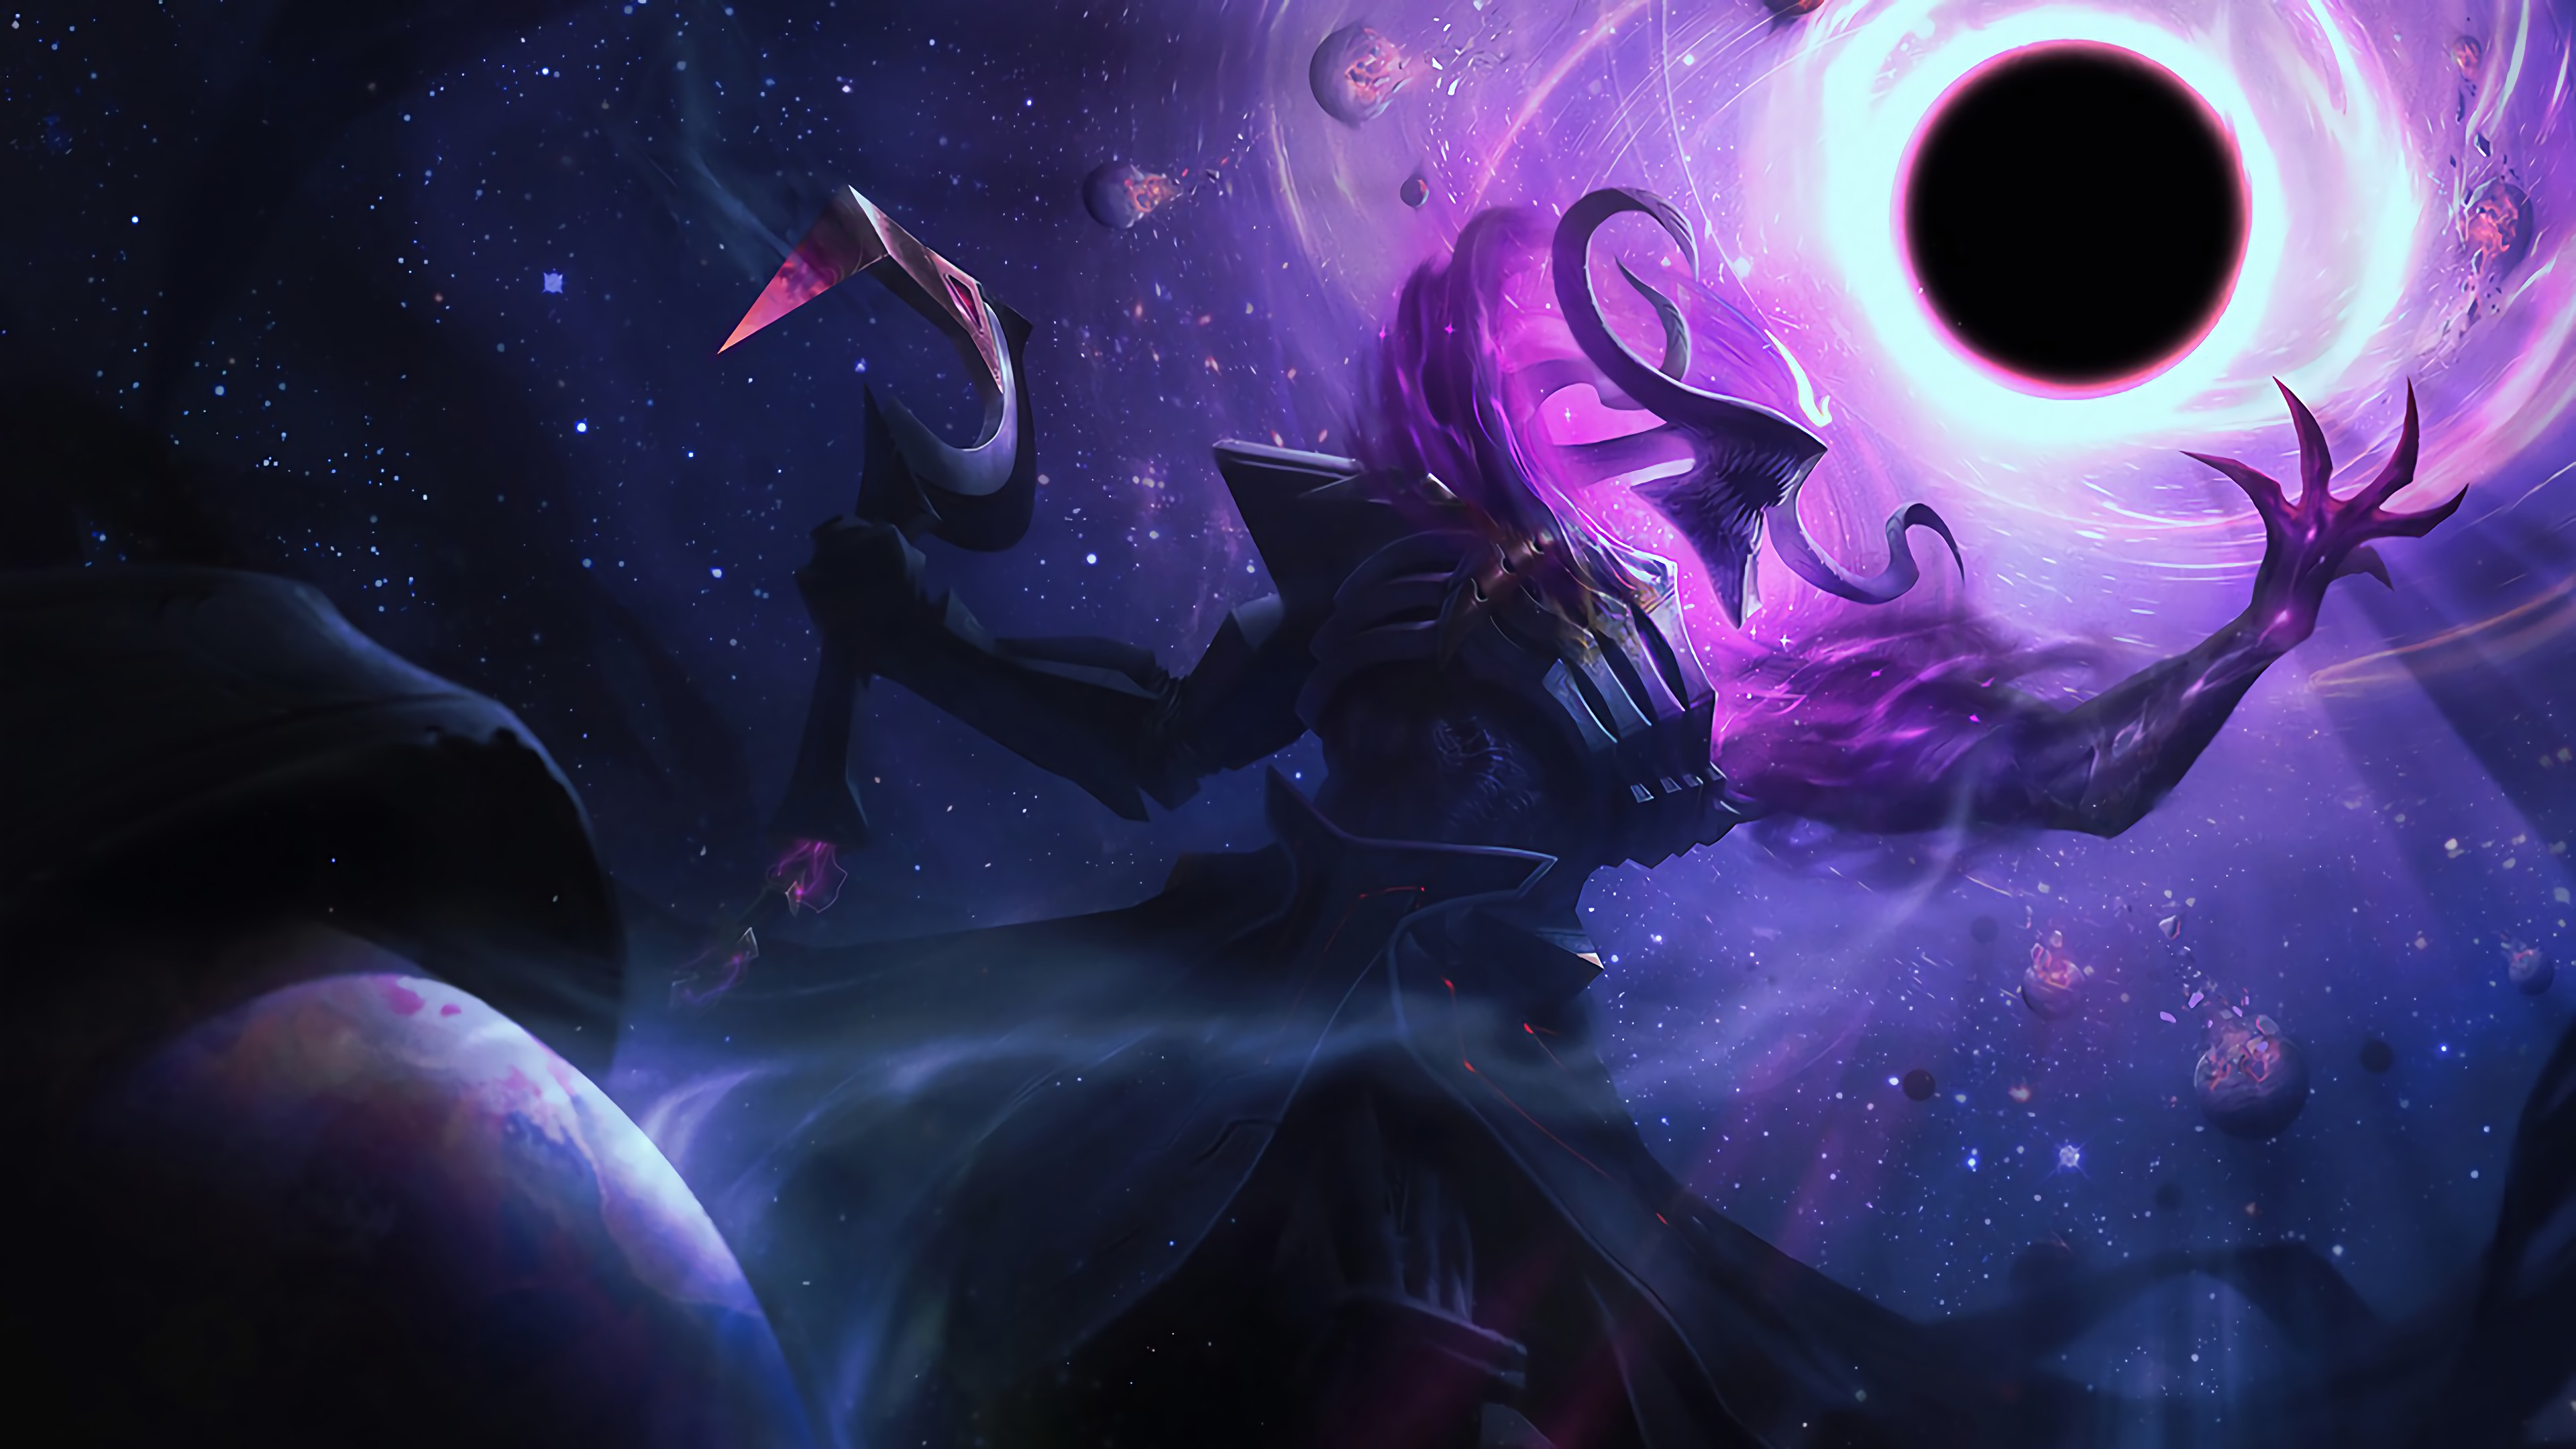 Fondos de pantalla Dark Star Thresh League of Legends